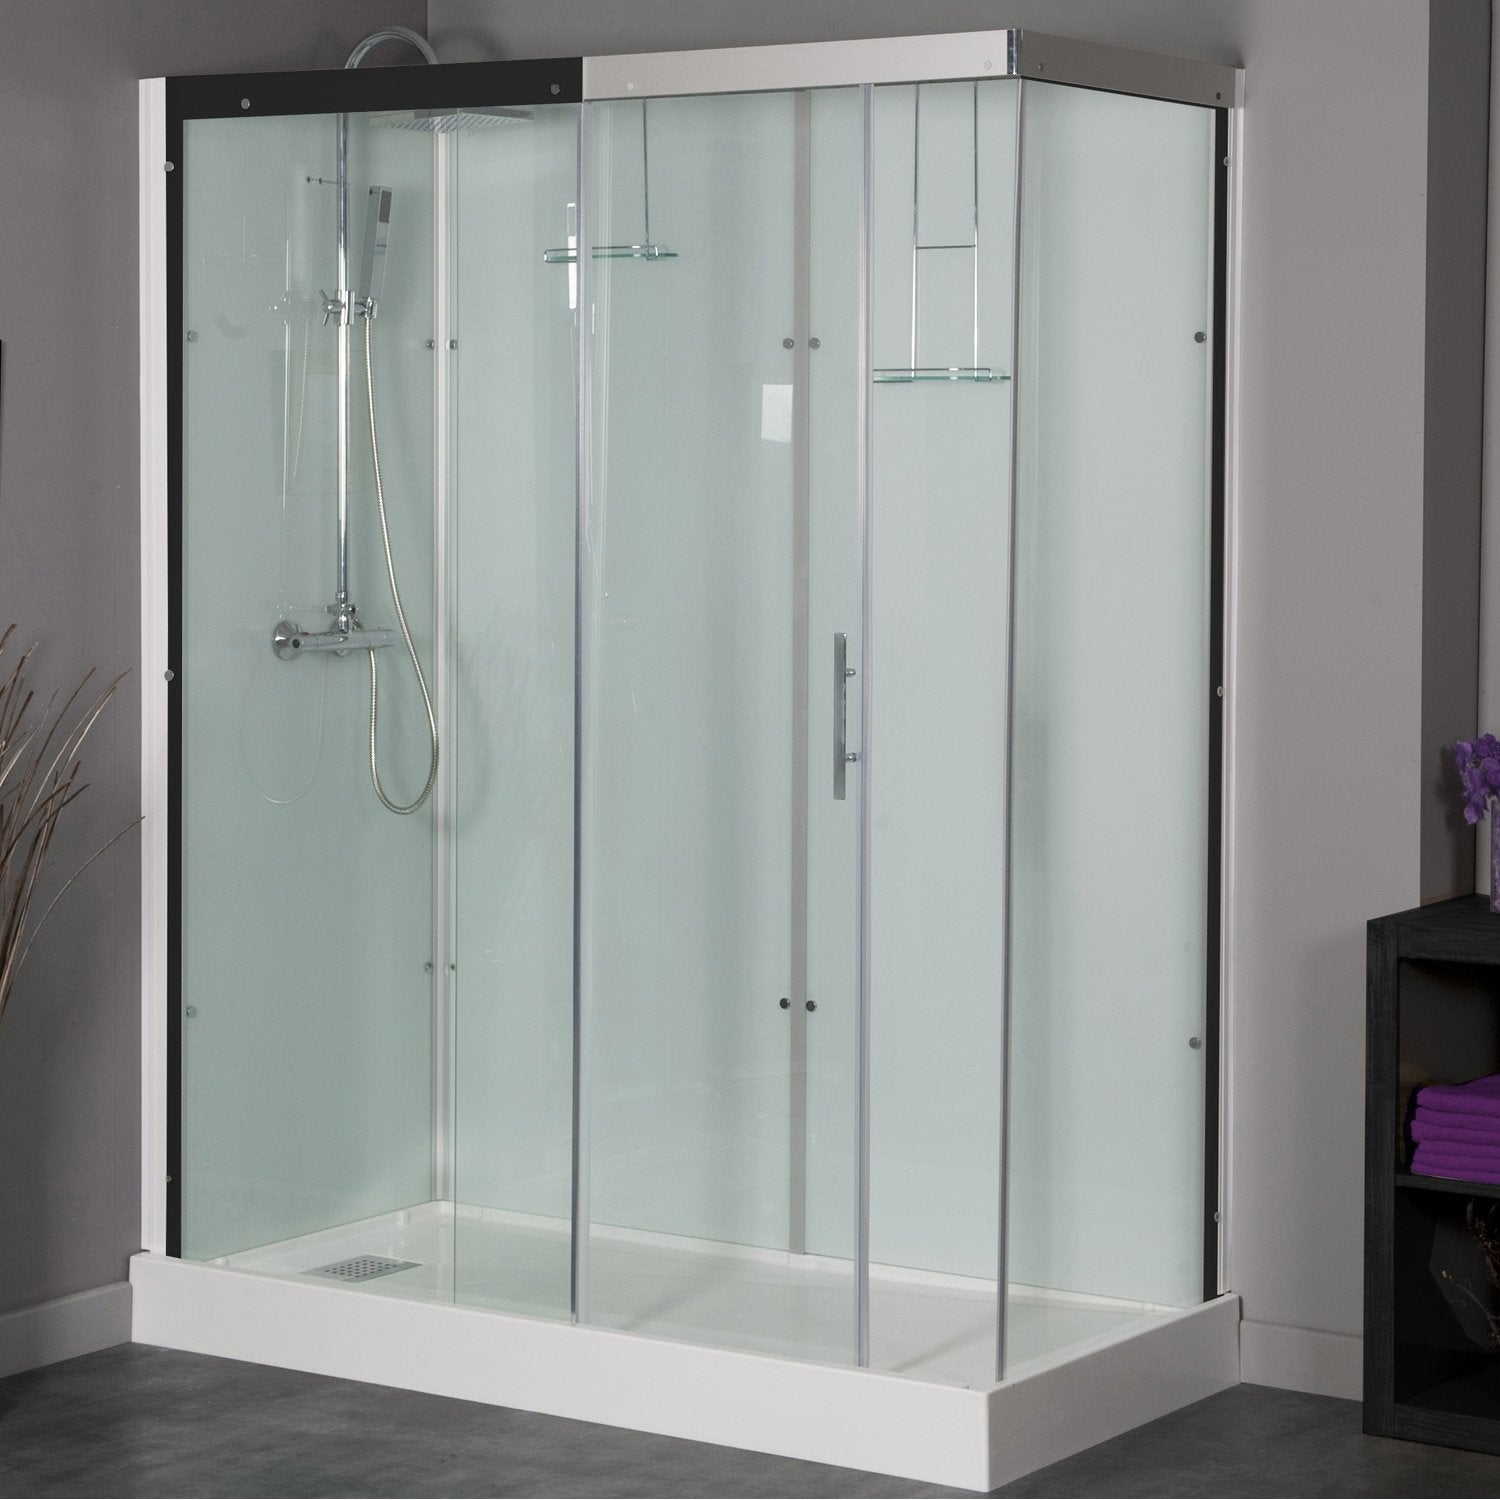 cabine de douche rectangulaire 160x80 cm thalaglass 2. Black Bedroom Furniture Sets. Home Design Ideas